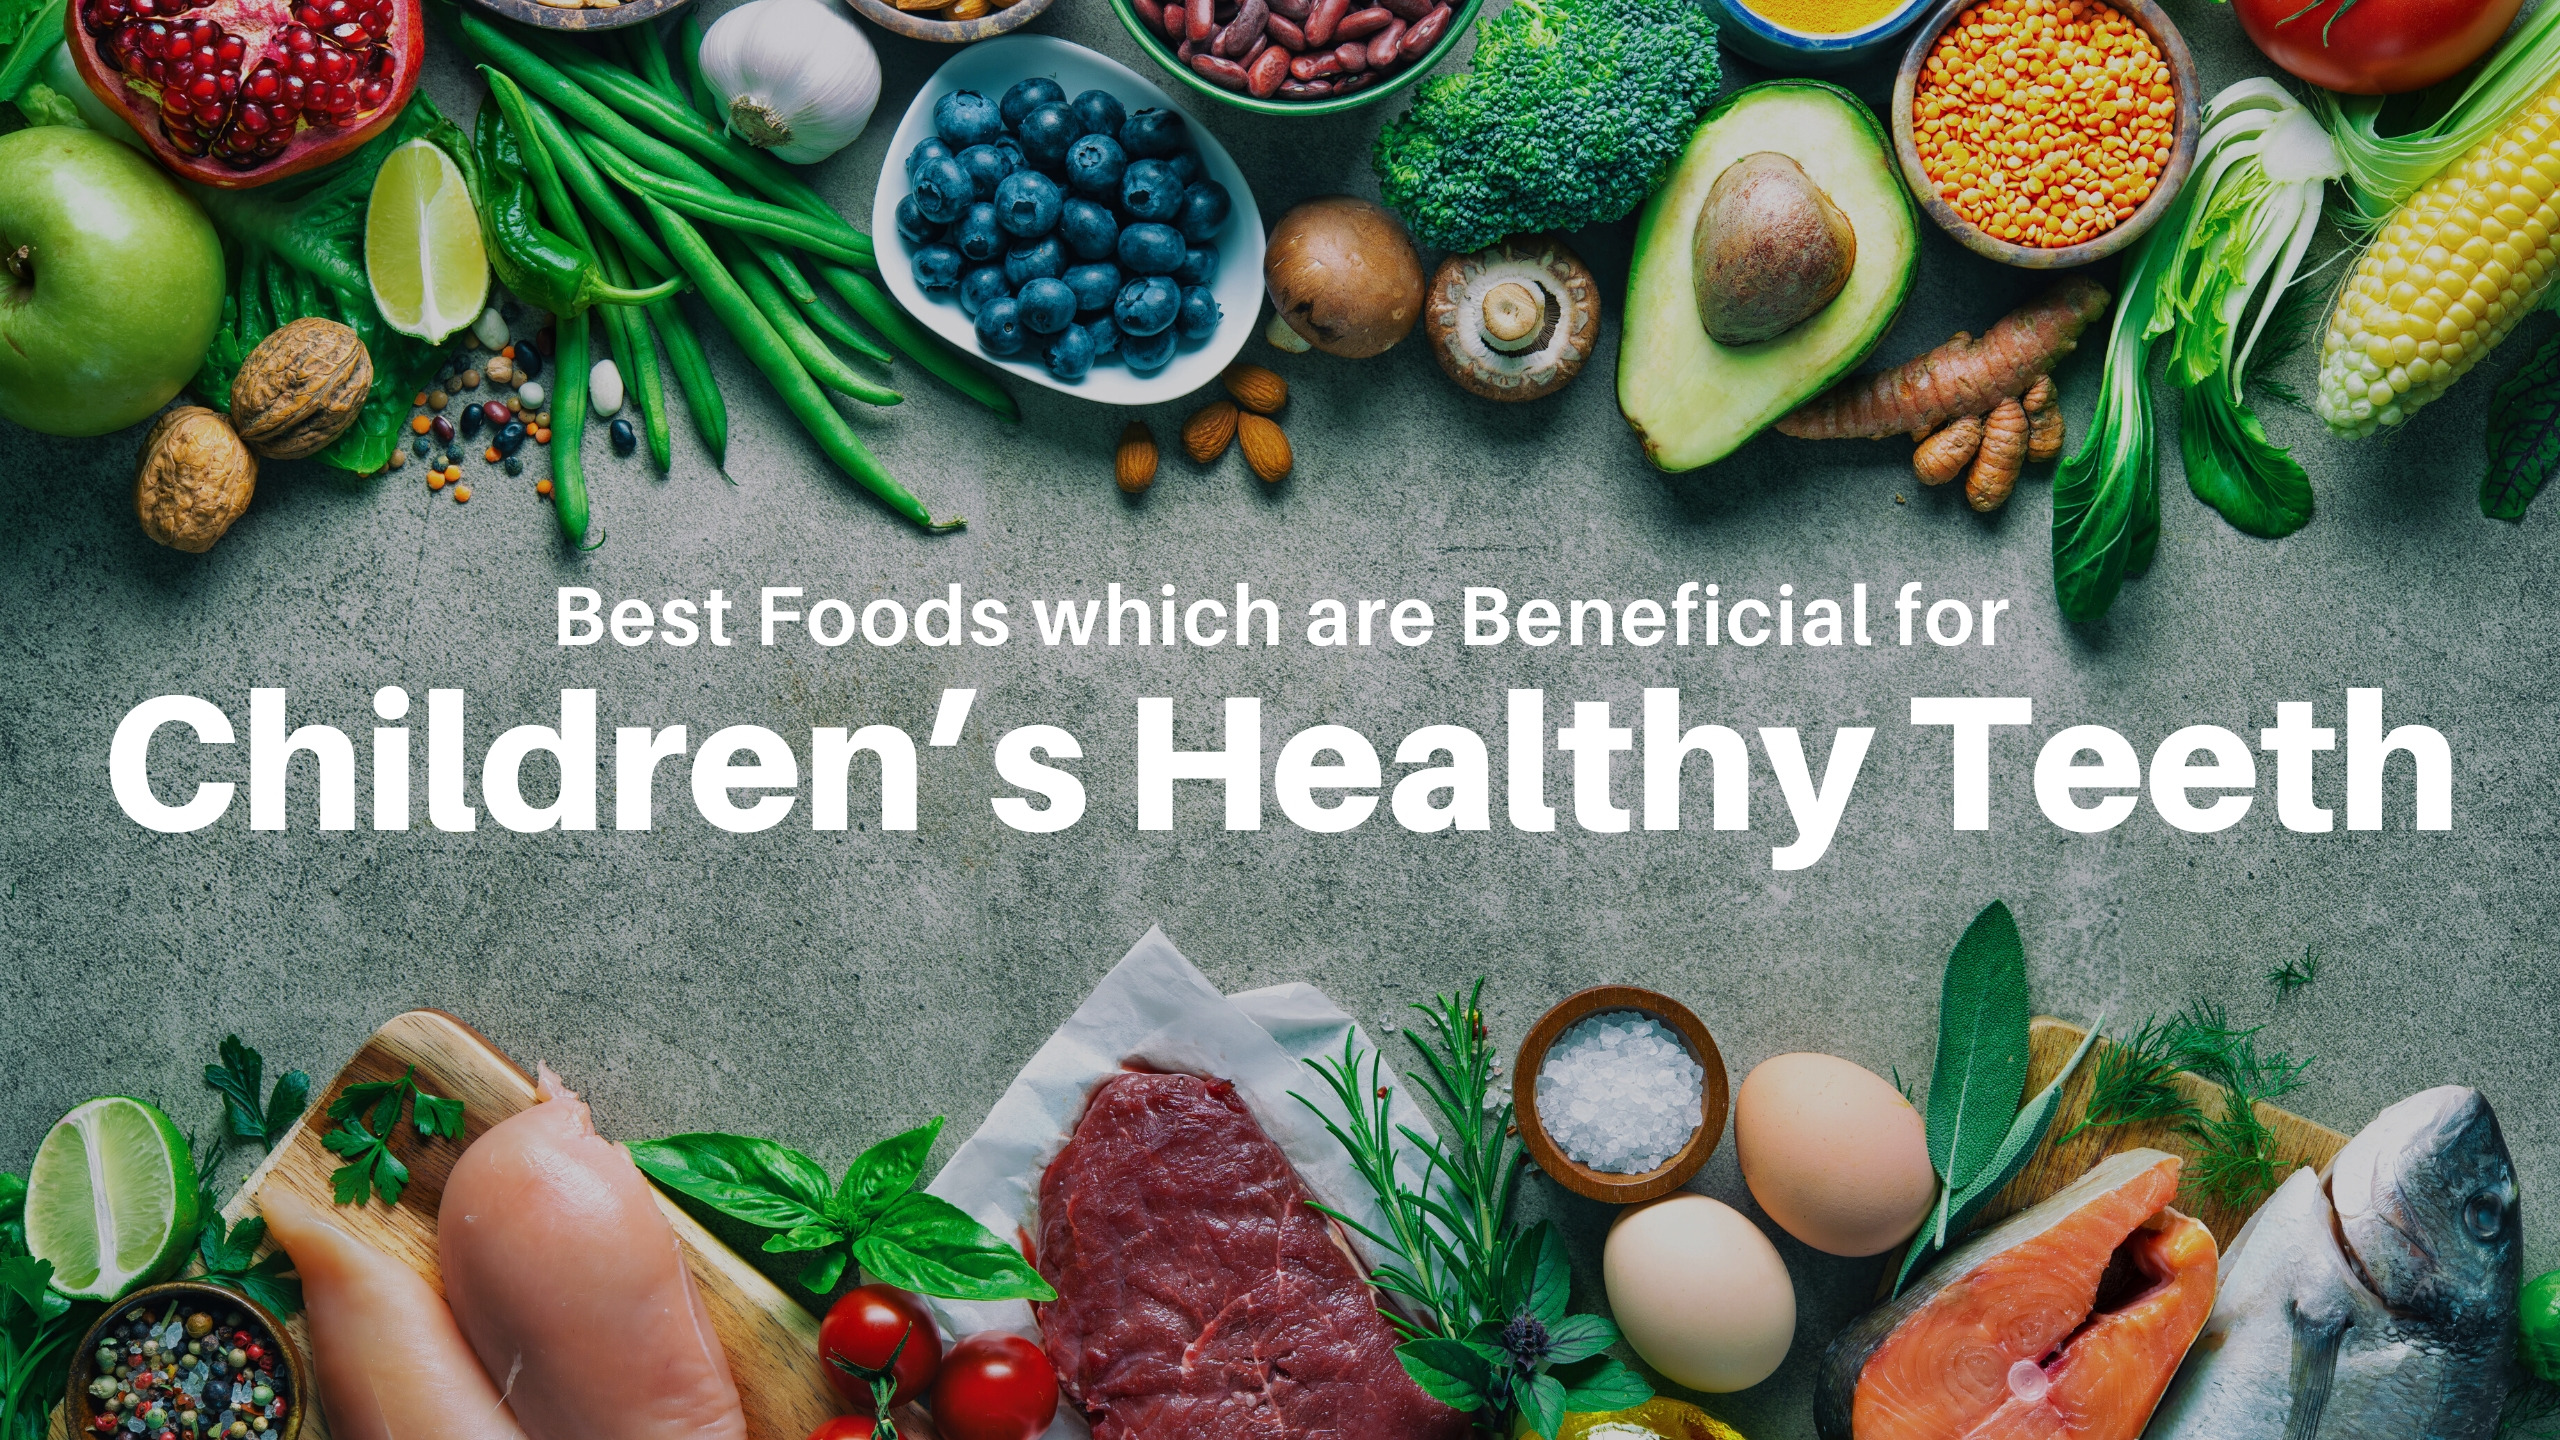 Best Food for Children's Healthy Teeth